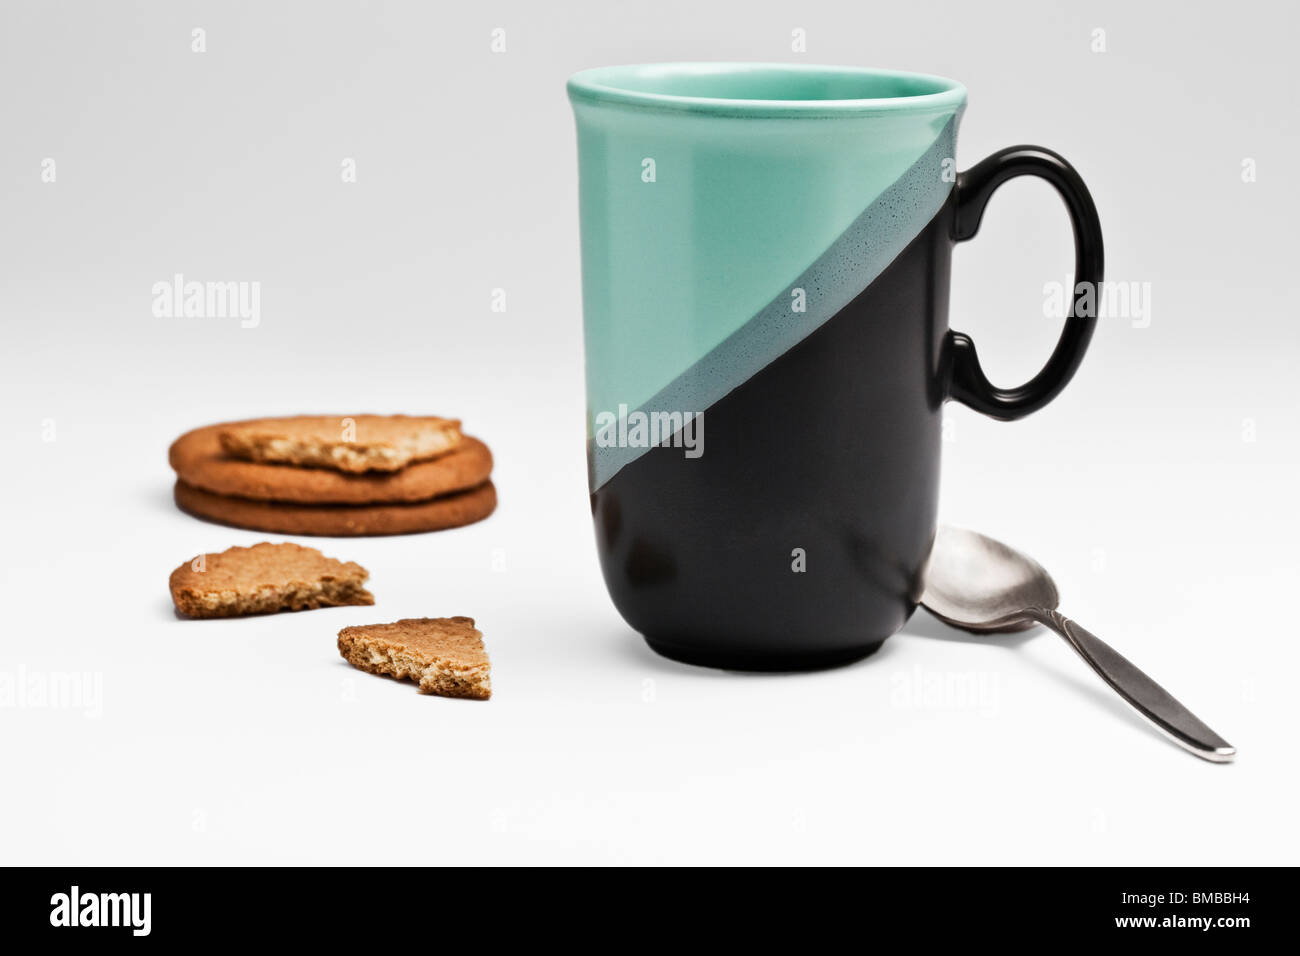 Mug vert/noir et biscuits Photo Stock